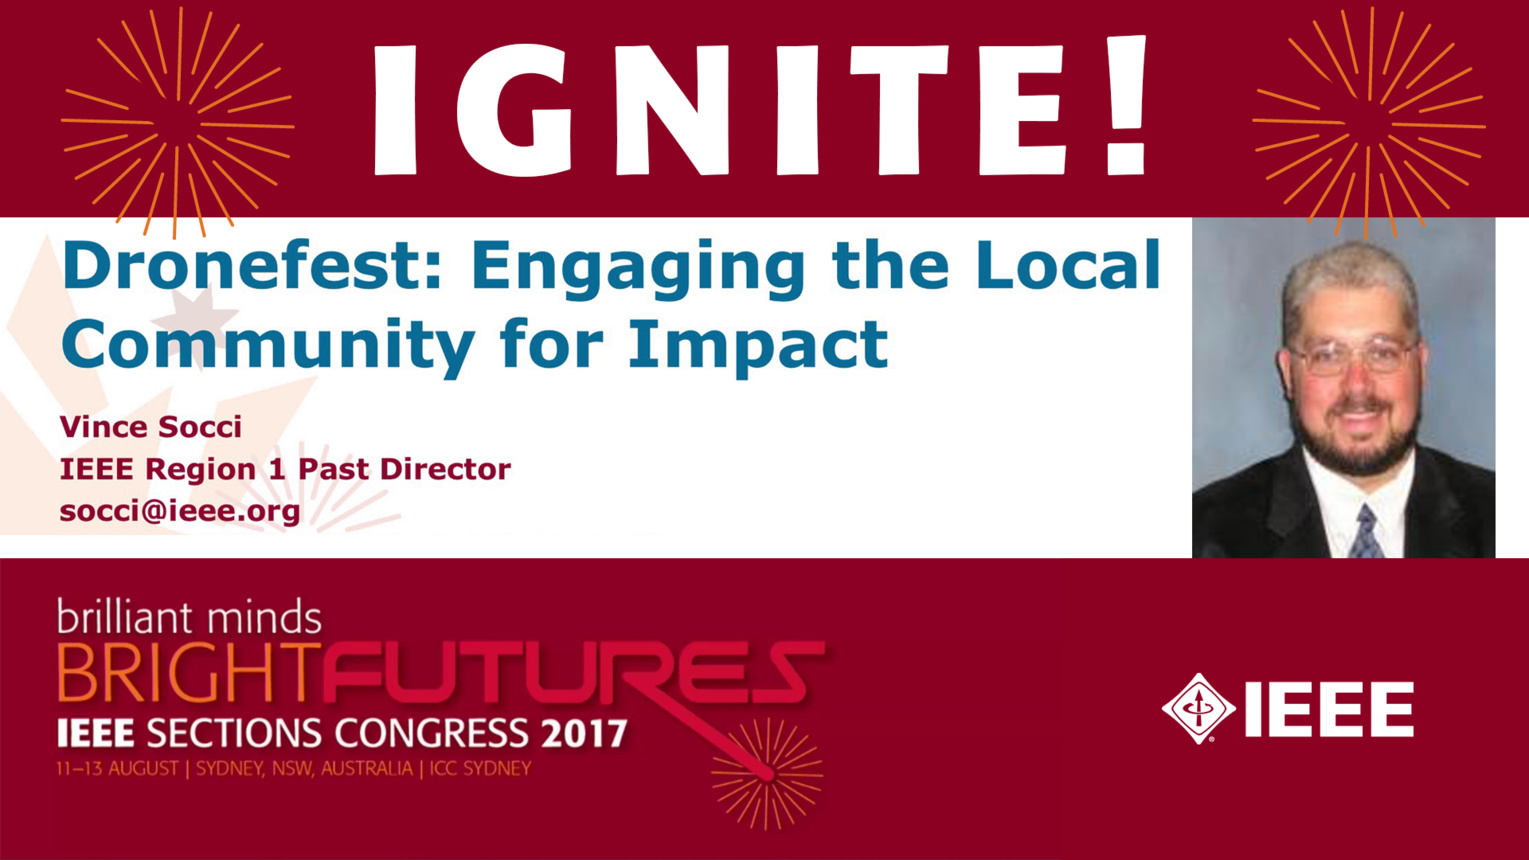 Dronefest: Engaging the Local Community for Impact - Vince Socci - Ignite: Sections Congress 2017